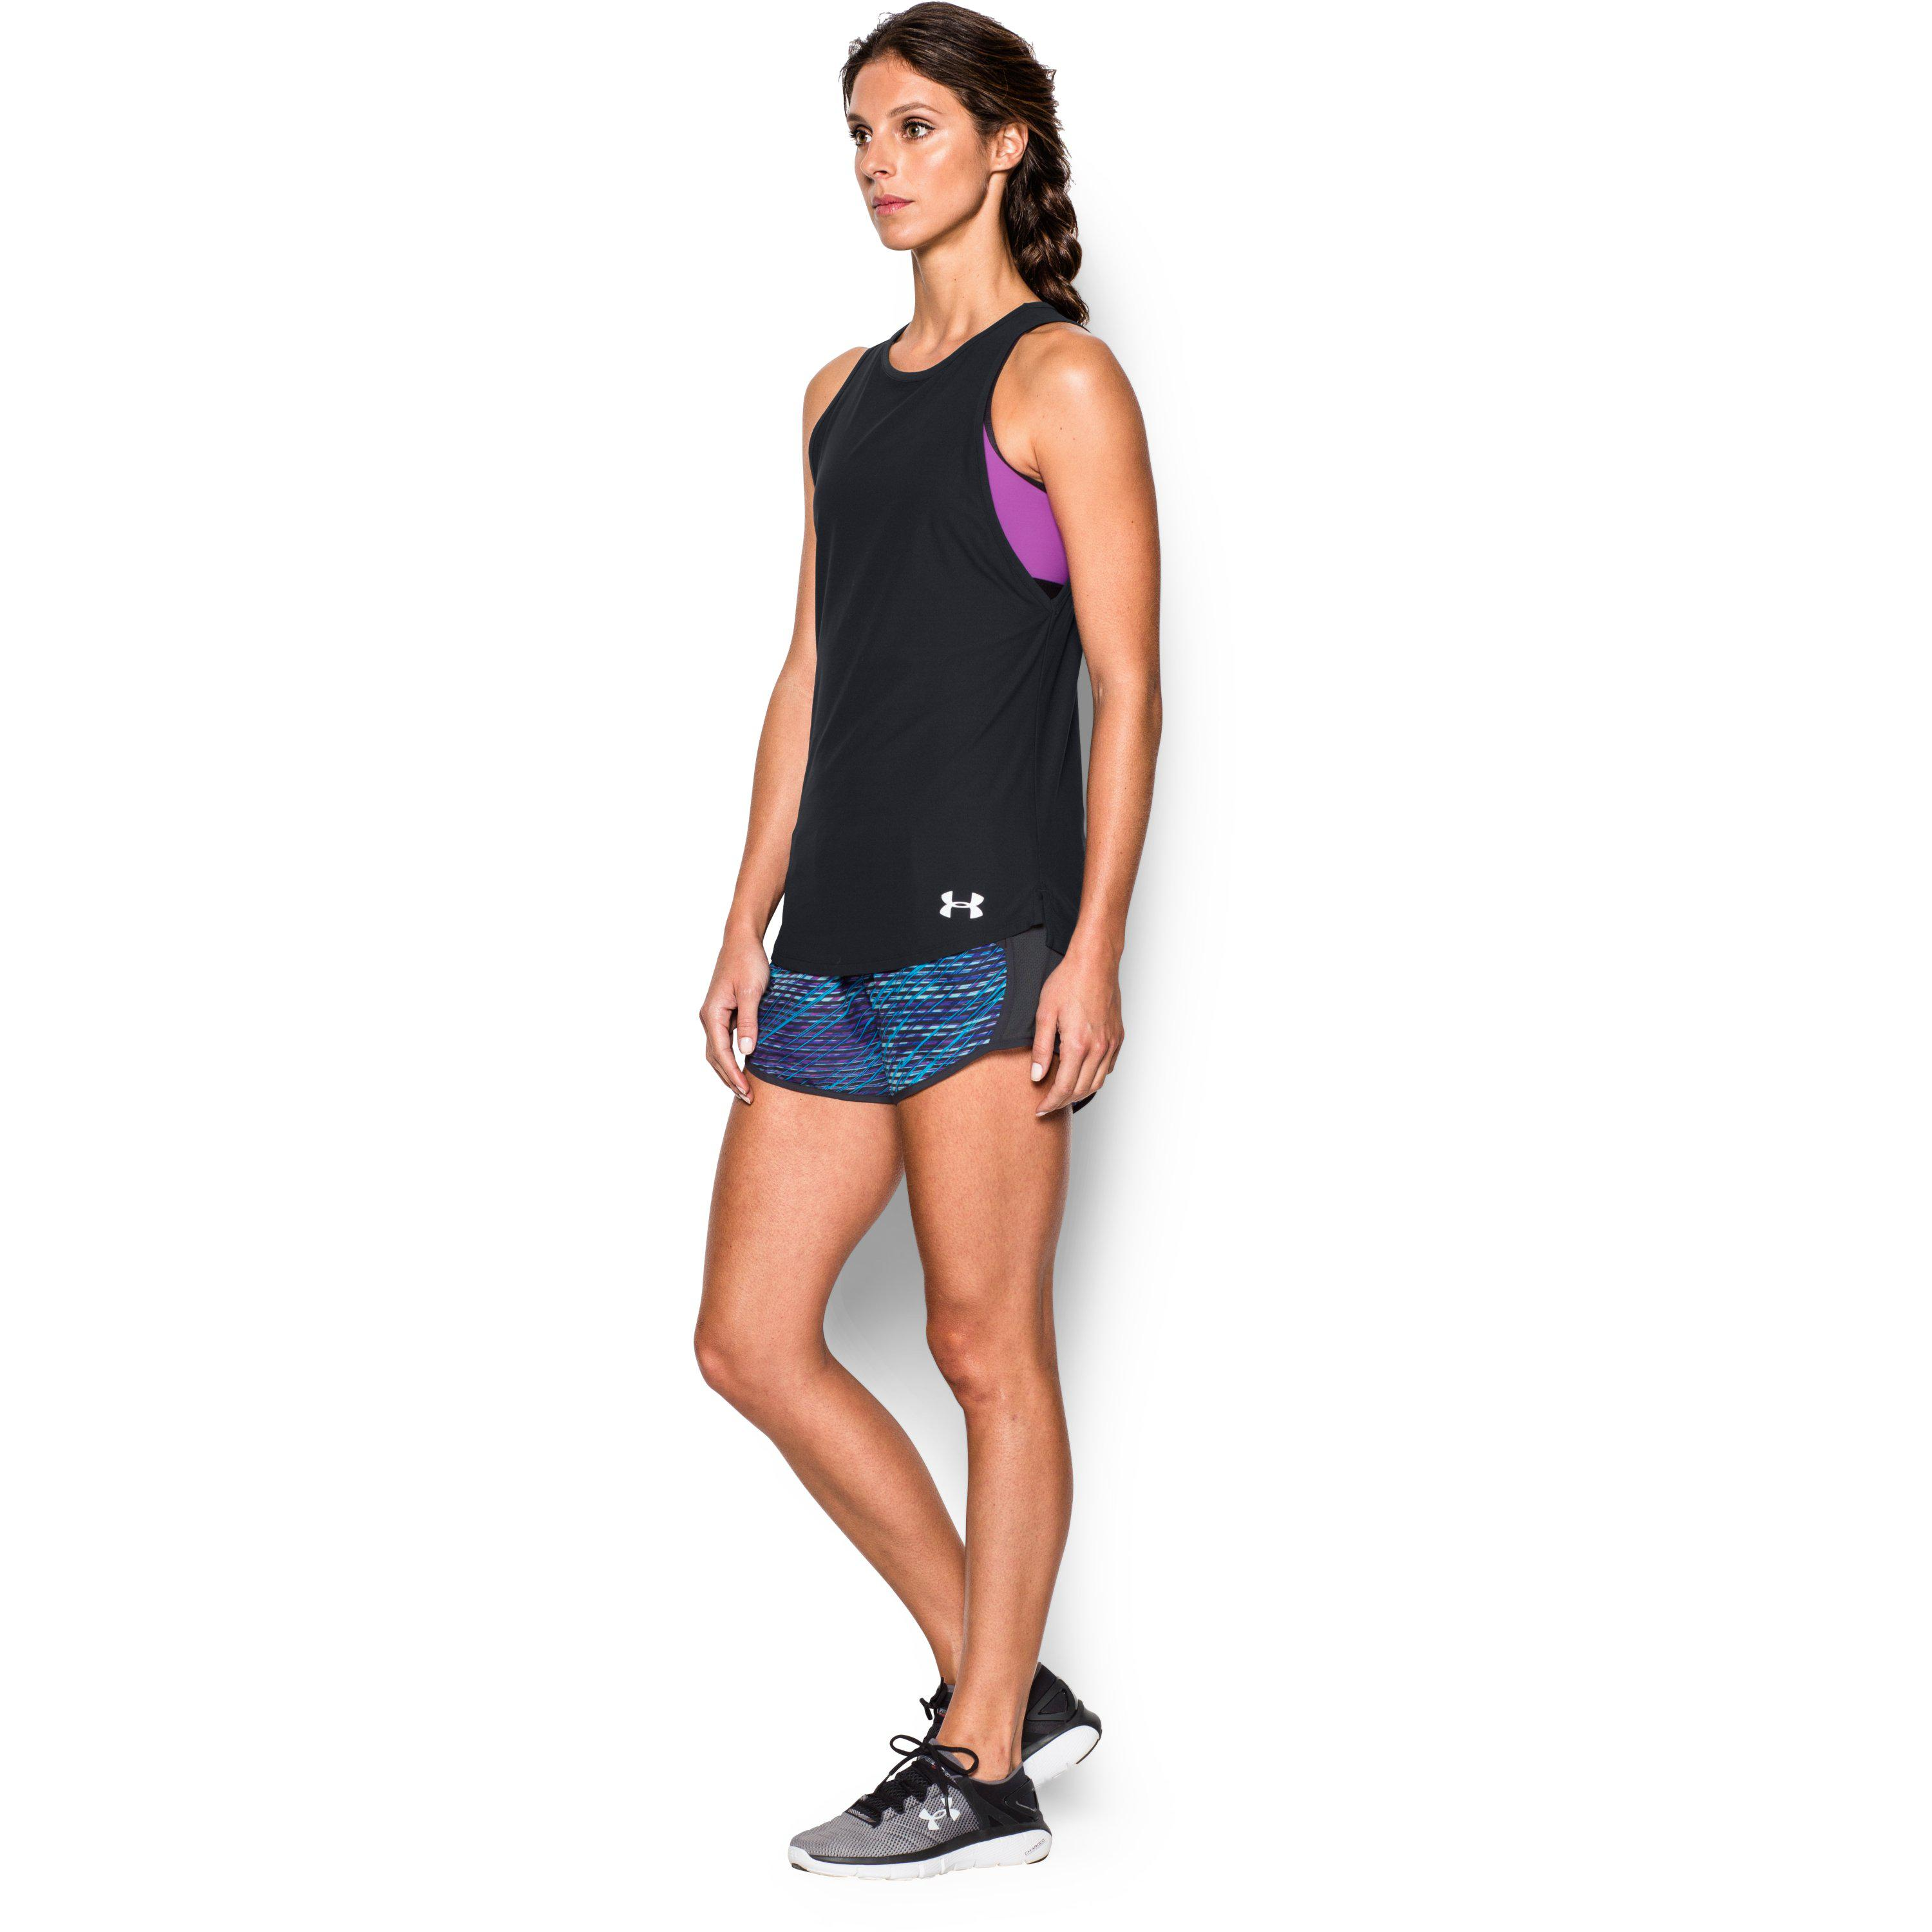 e7c51e178f Lyst - Under Armour Women's Ua Coolswitch Run Tank in Black